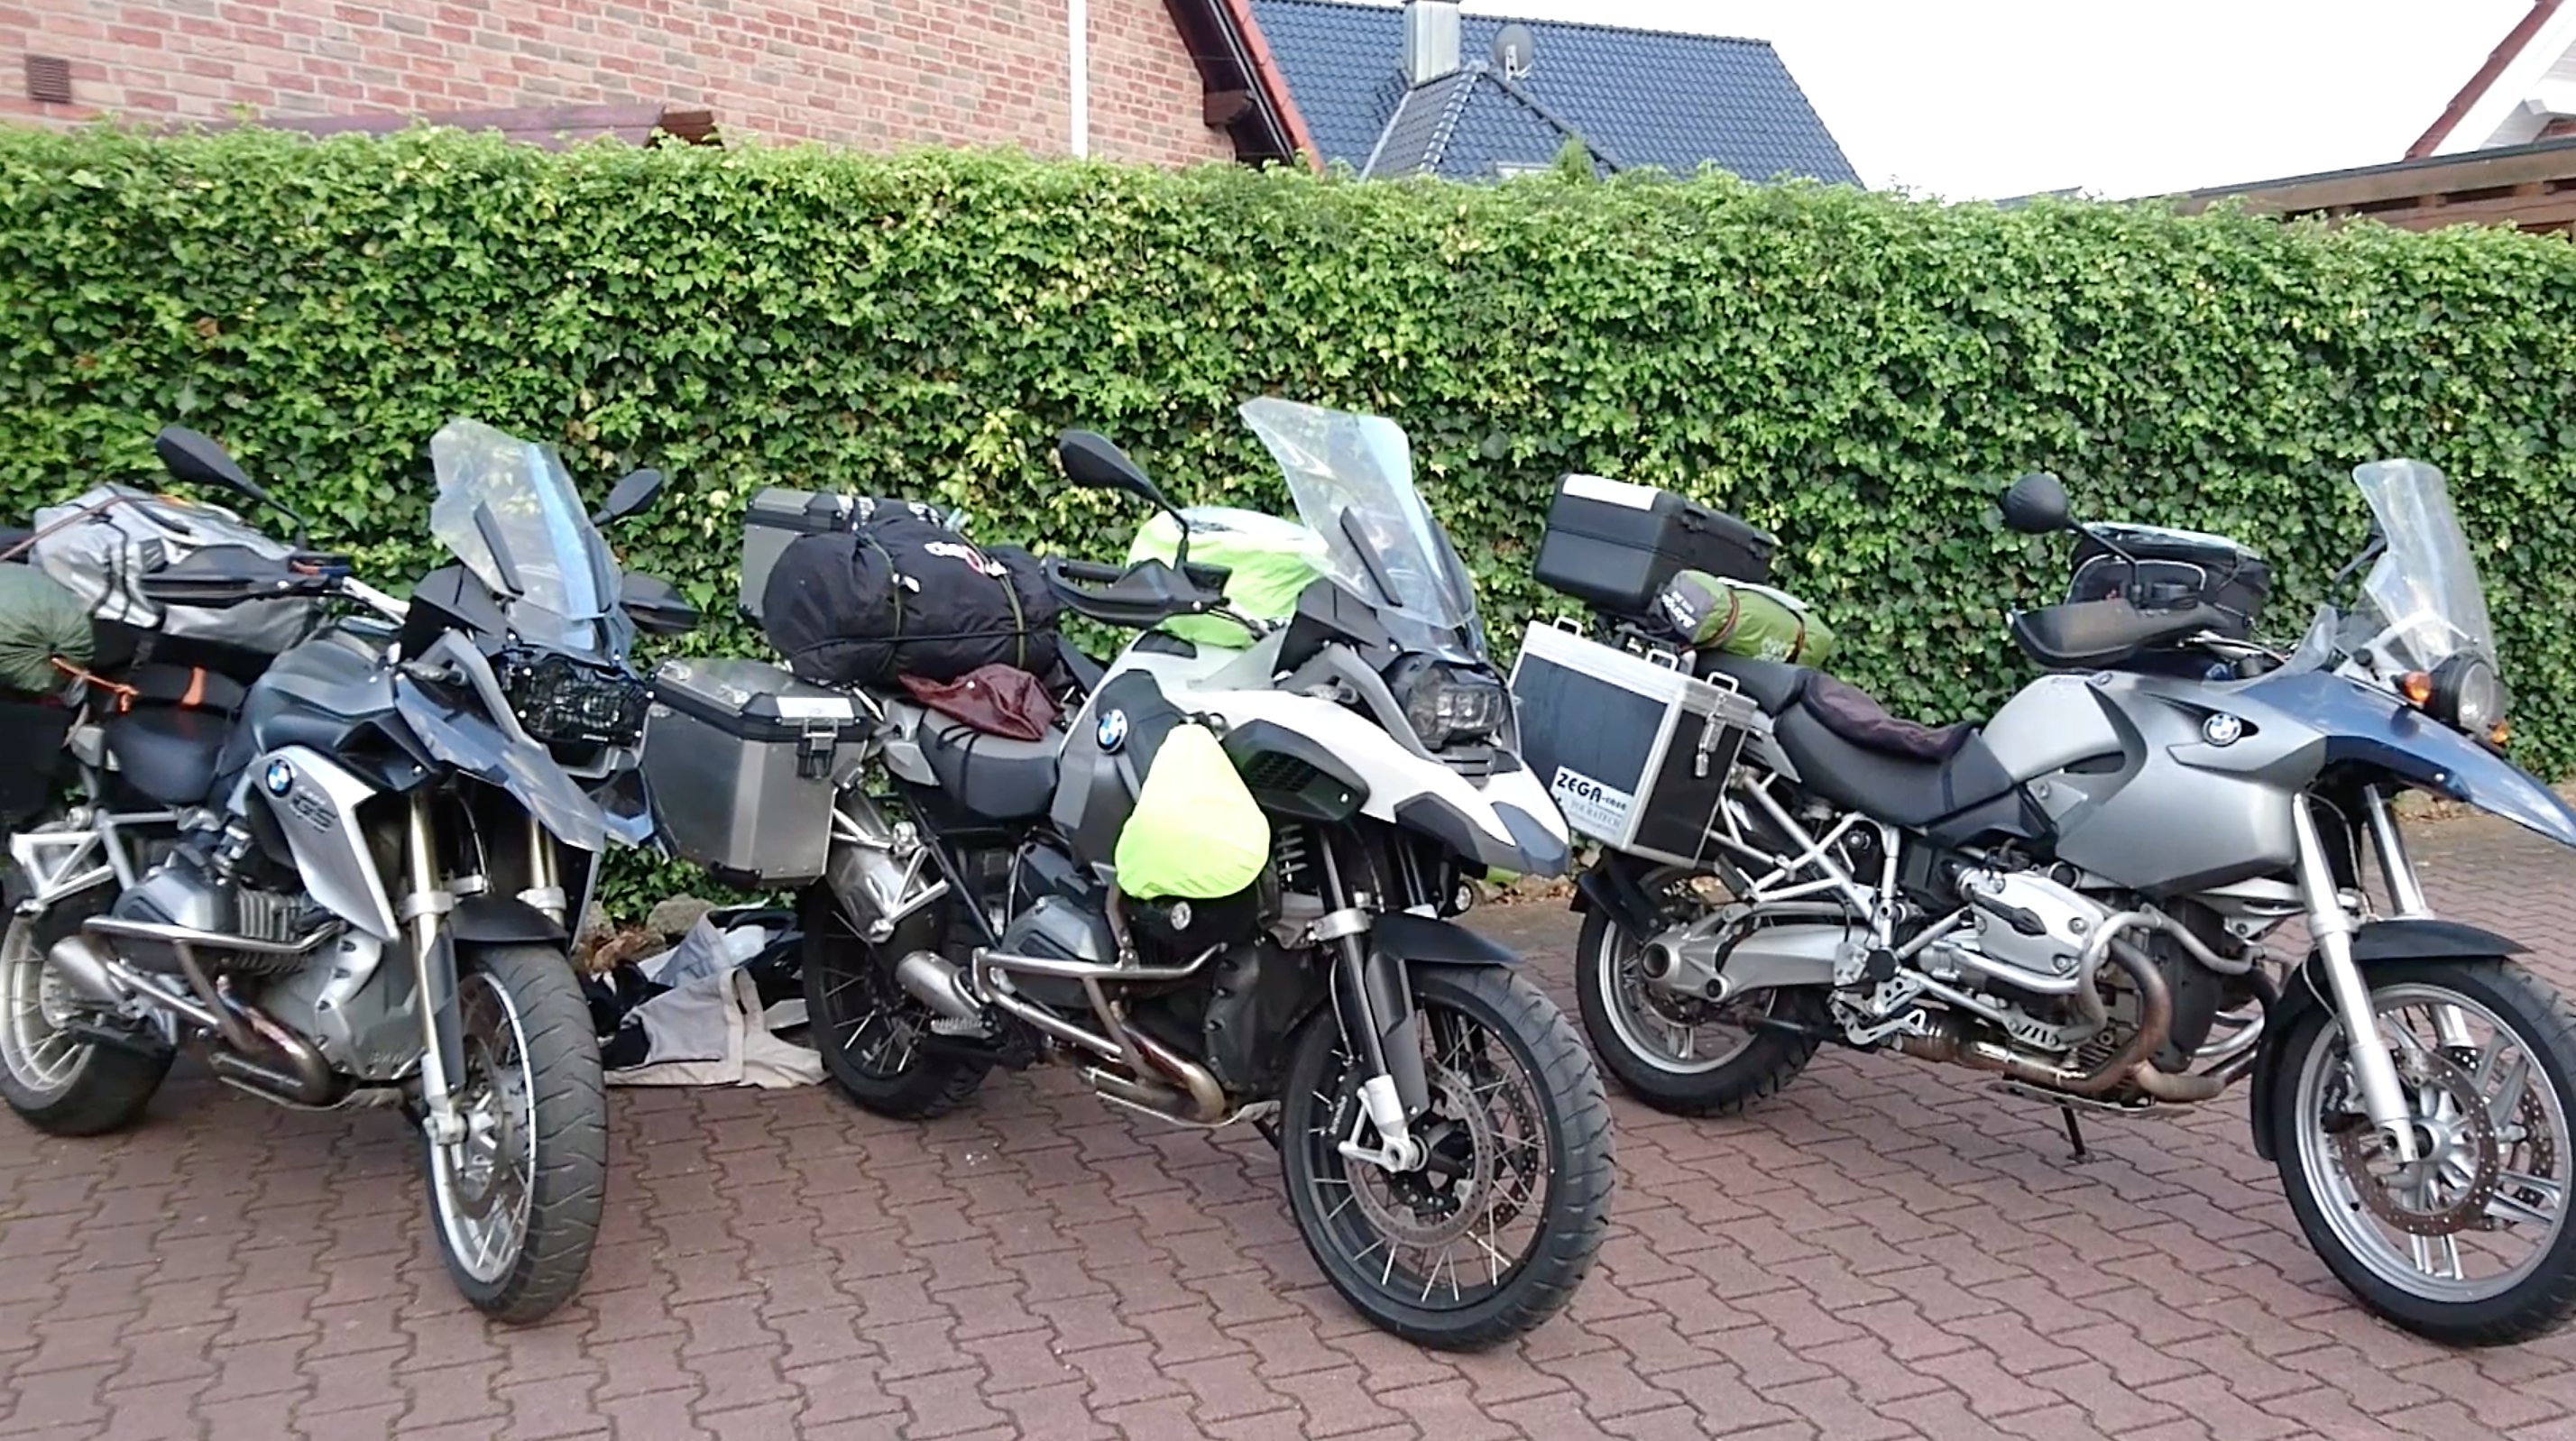 BMW R 1200GS Motorcycles European motorcycle tour Germany